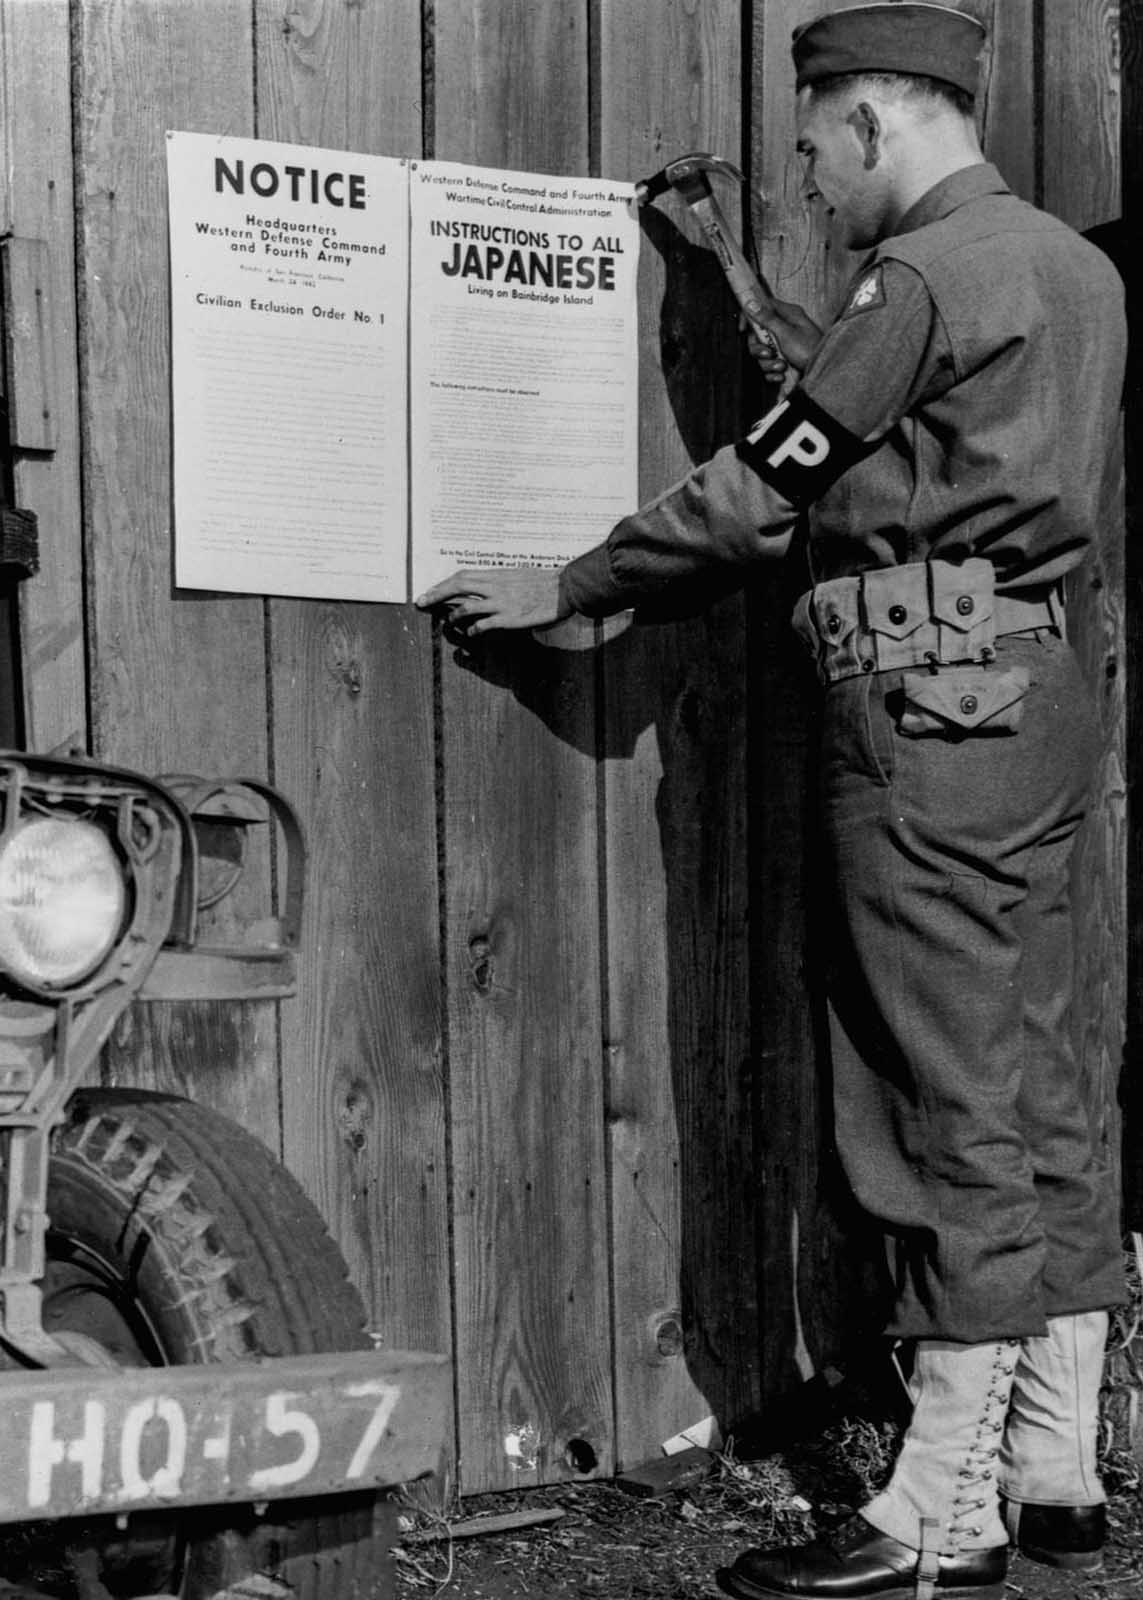 A military police officer posts Civilian Exclusion Order No. 1, requiring evacuation of Japanese living on Bainbridge Island, Washington.